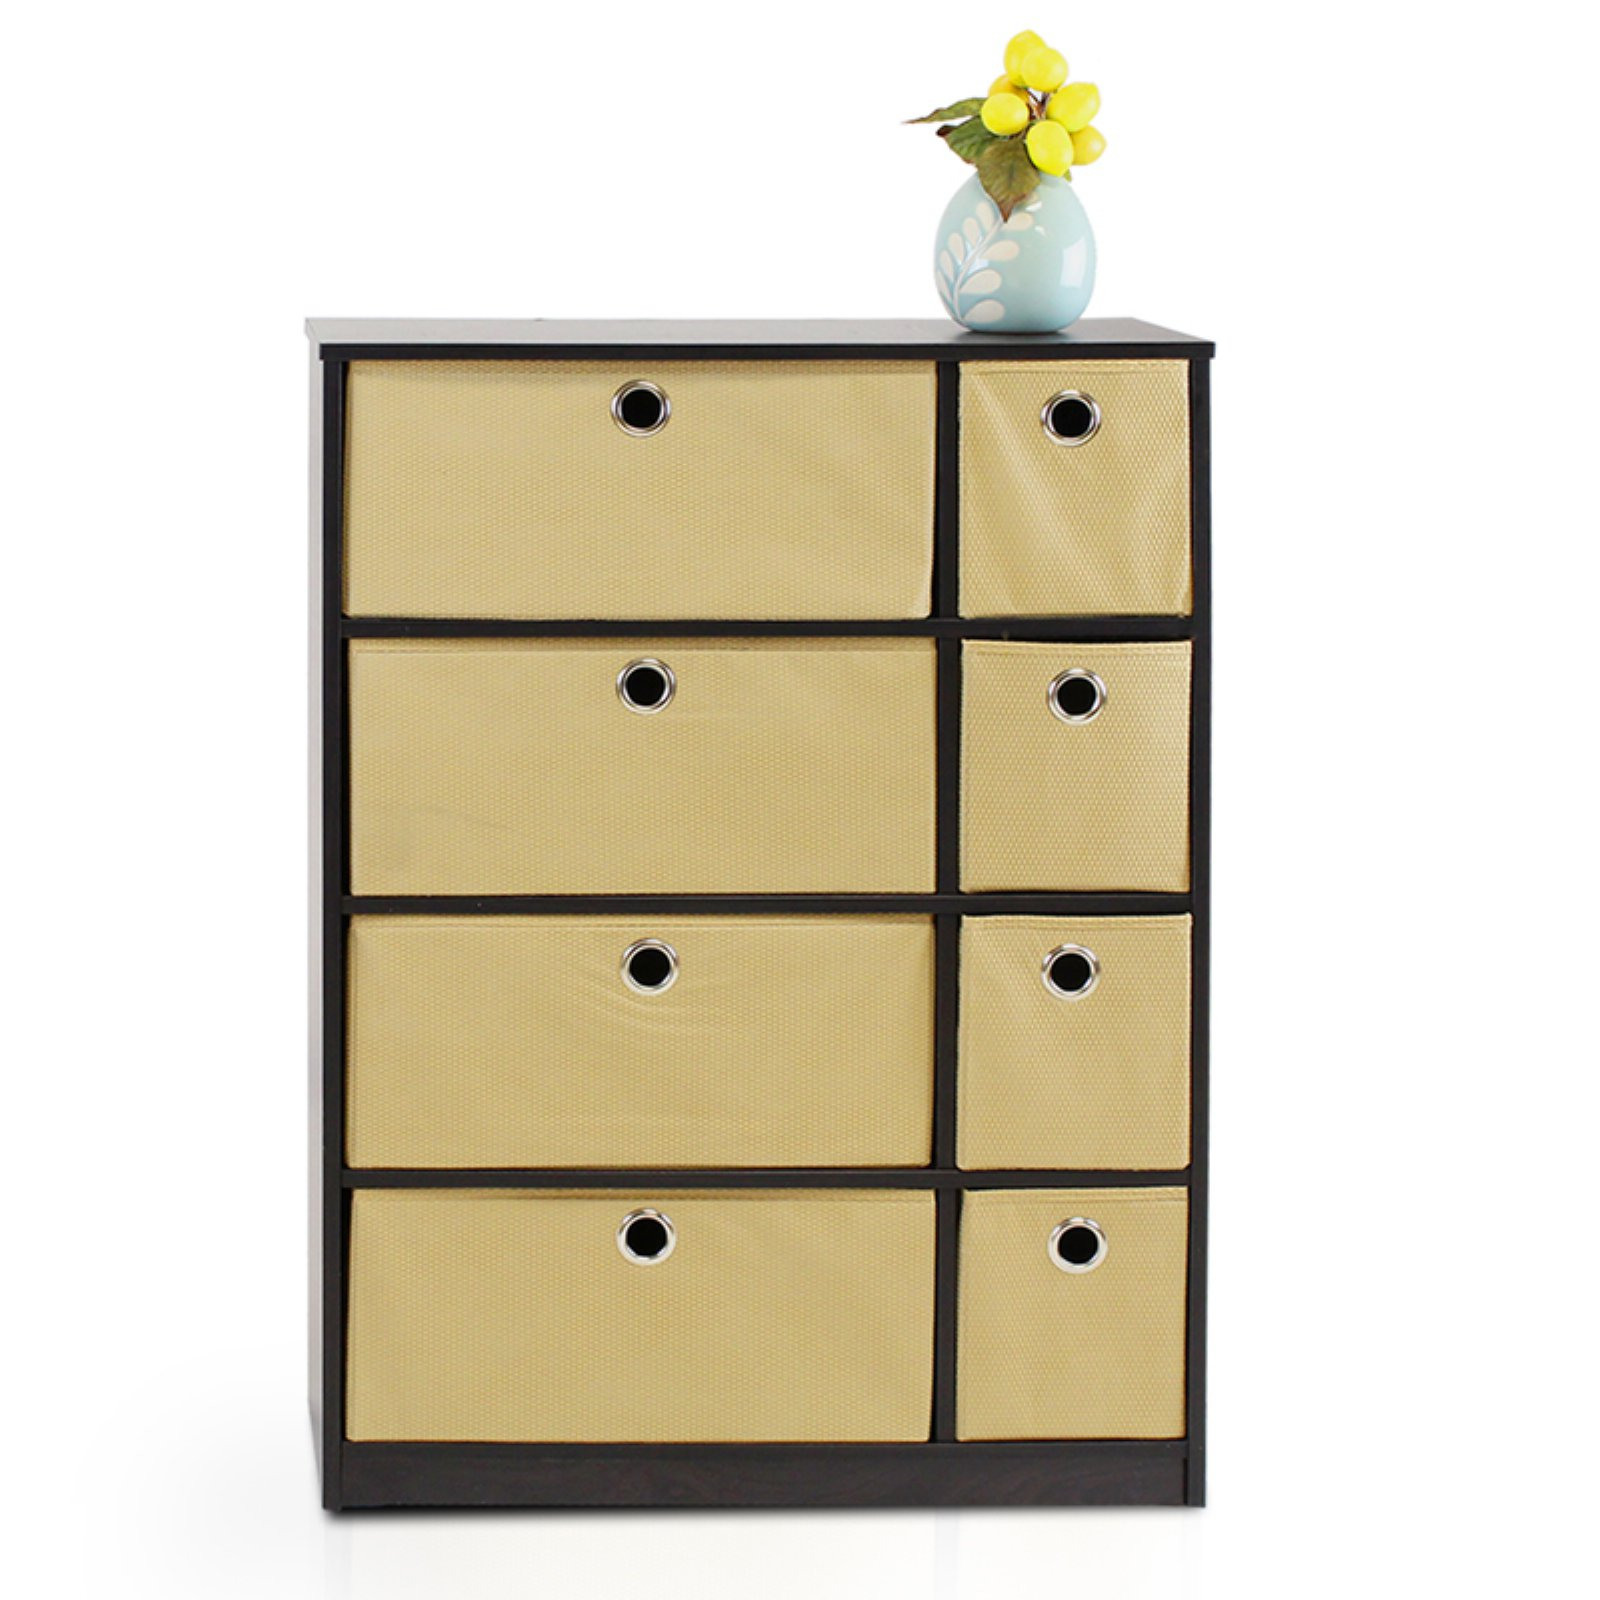 Furinno 13089EX/LB Econ Storage Organizer Cabinet with Bins, Espresso/Light Brown